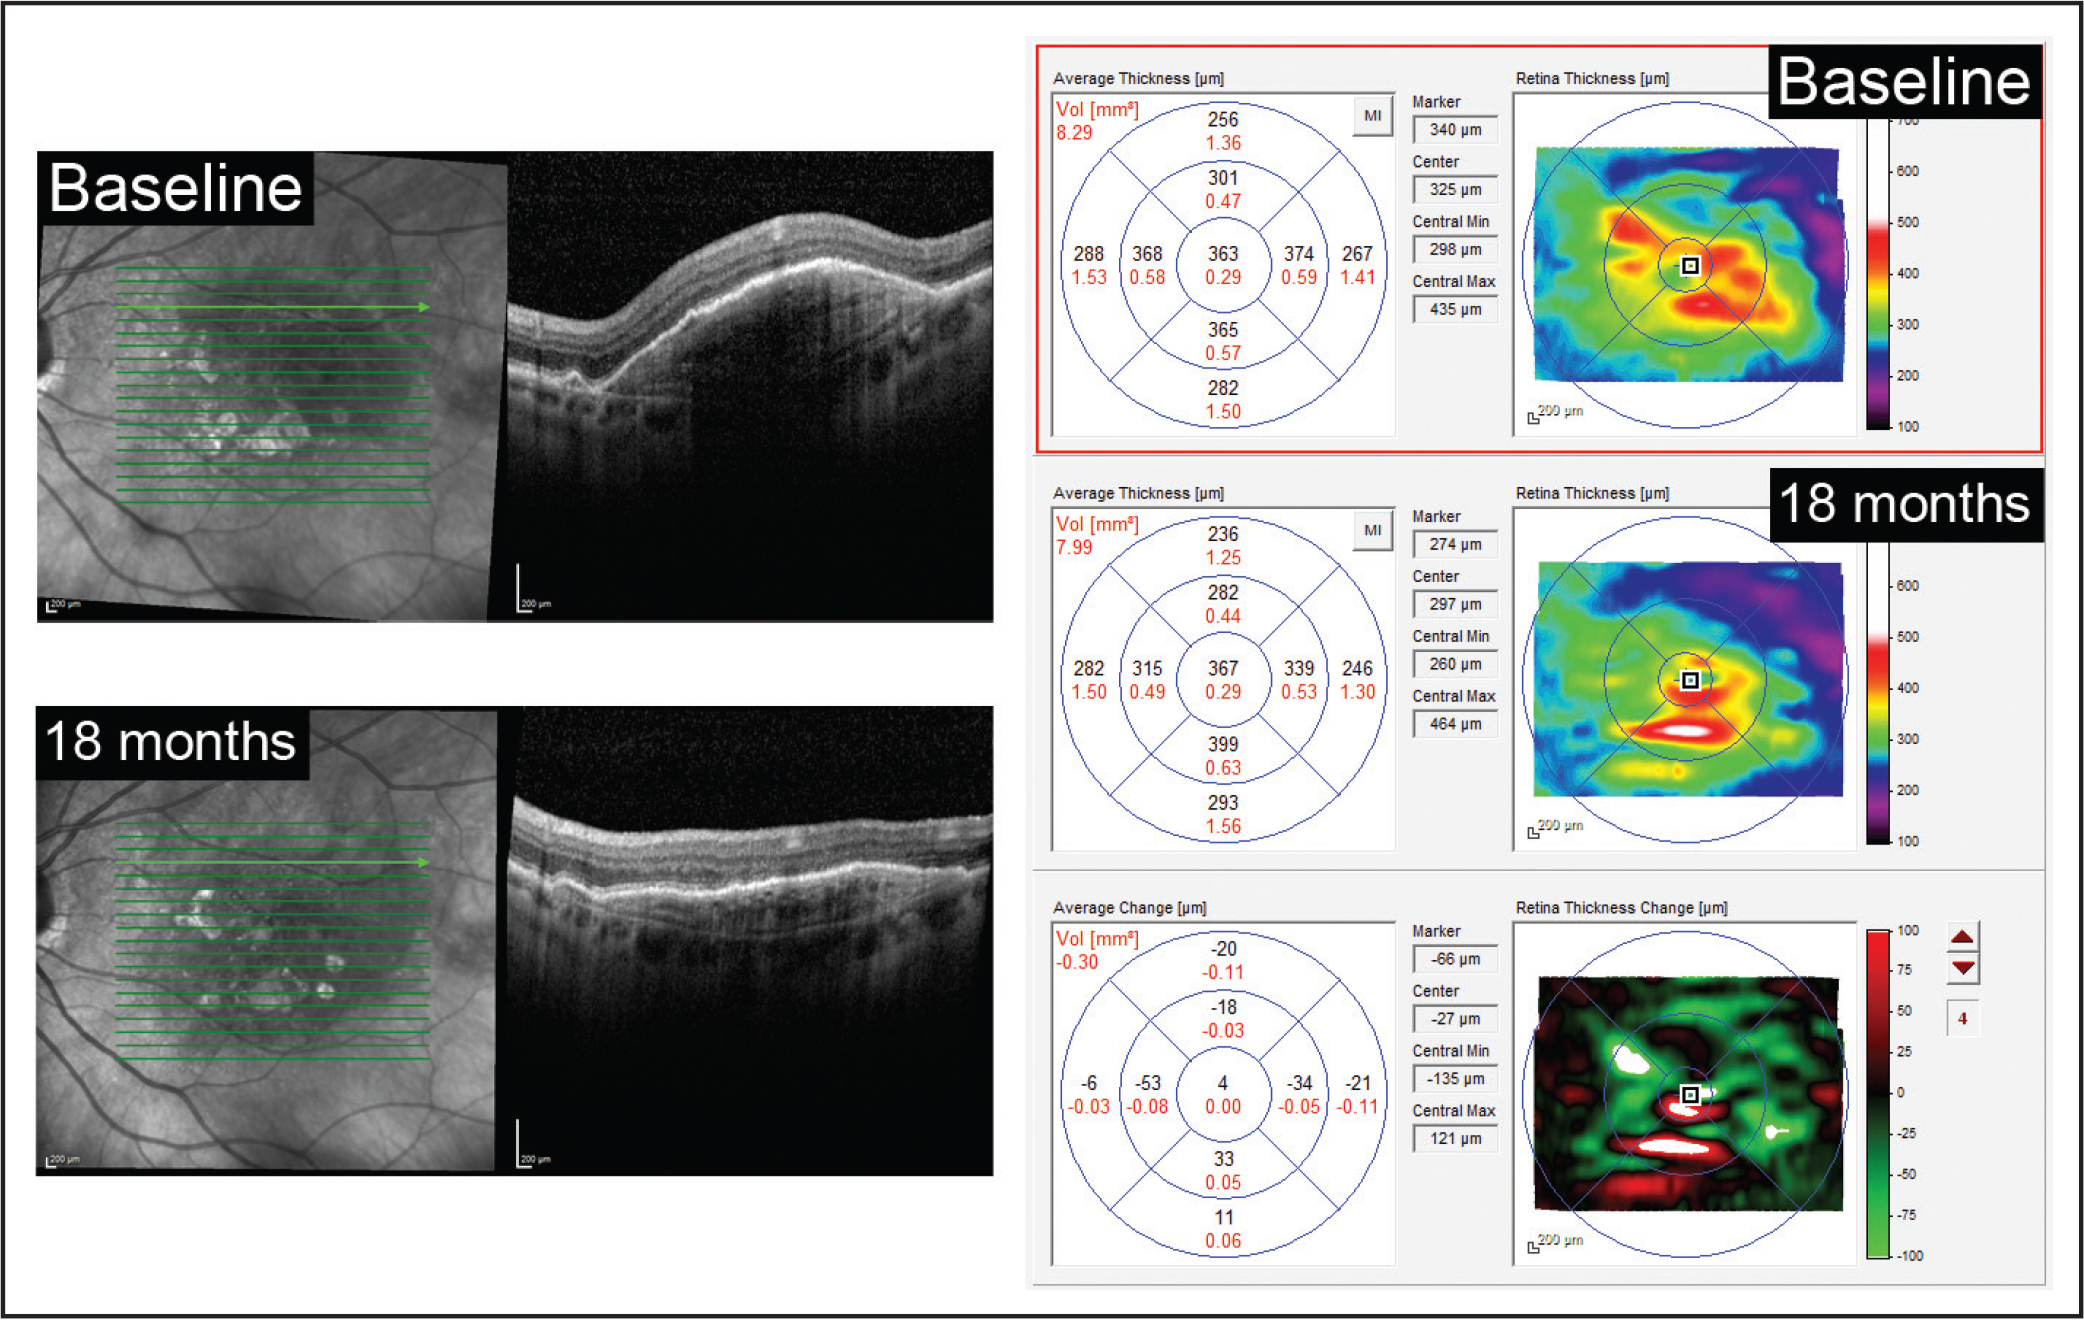 A 78-year-old woman with neovascular age-related macular degeneration and persistent pigment epithelial detachment (PED) despite 19 prior ranibizumab injections over 20 months before transitioning to aflibercept. After 15 aflibercept injections, there was a significant reduction in PED volume from 2.95 mm3 to 2.46 mm3. PED height reduced from 600 µm to 219 µm, and diameter increased from 4,392 µm to 5,074 µm, demonstrating a flattening of the PED. Central foveal thickness remained stable from 366 µm to 371 µm, and macular volume reduced from 8.29 mm3 to 7.99 mm3. BCVA was preserved at 20/40.